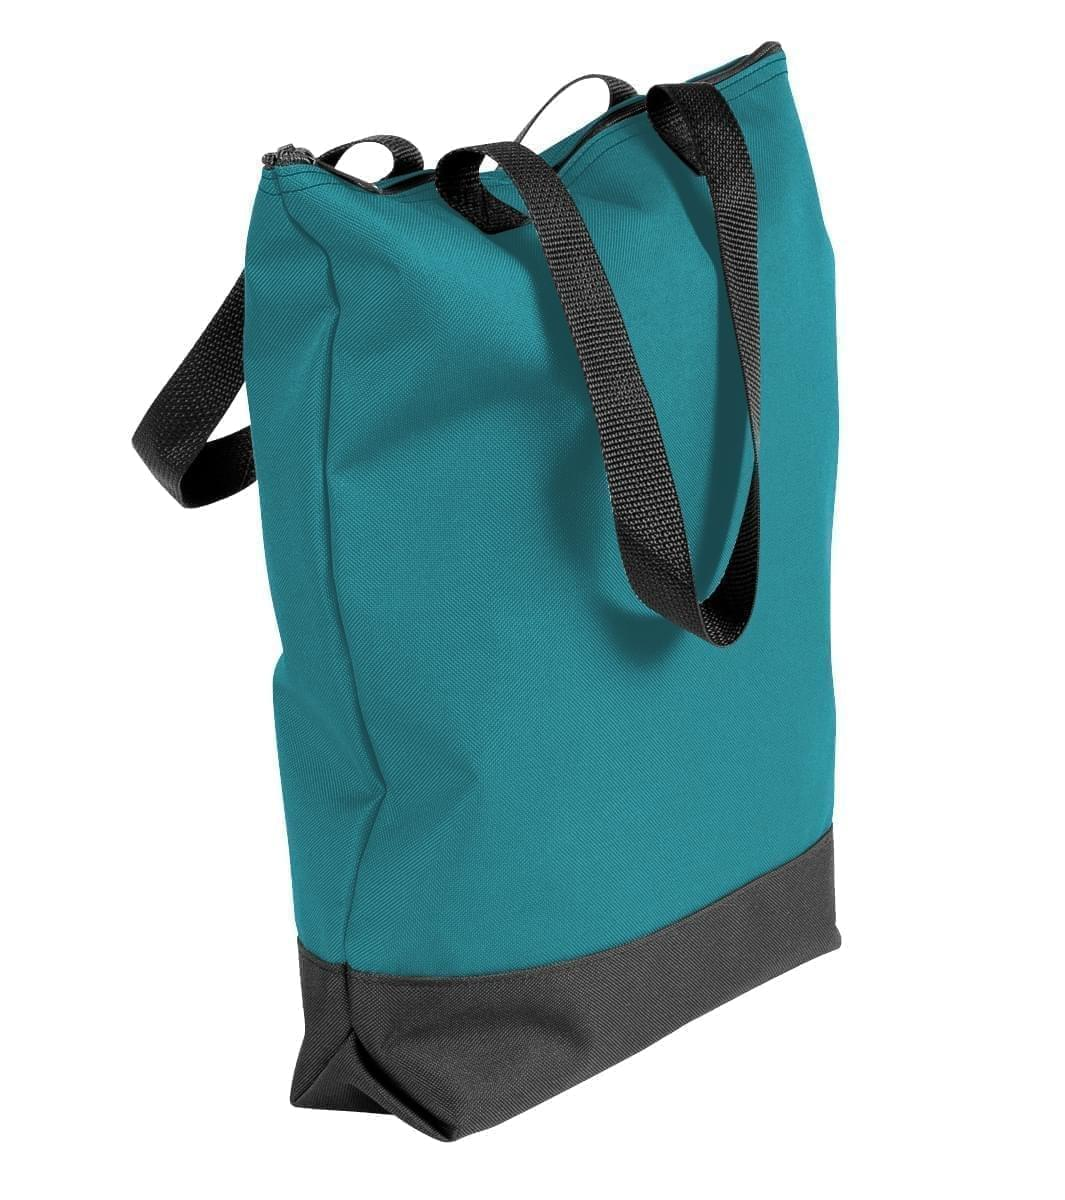 USA Made Poly Notebook Tote Bags, Turquoise-Black, 1AAMX1UA9R